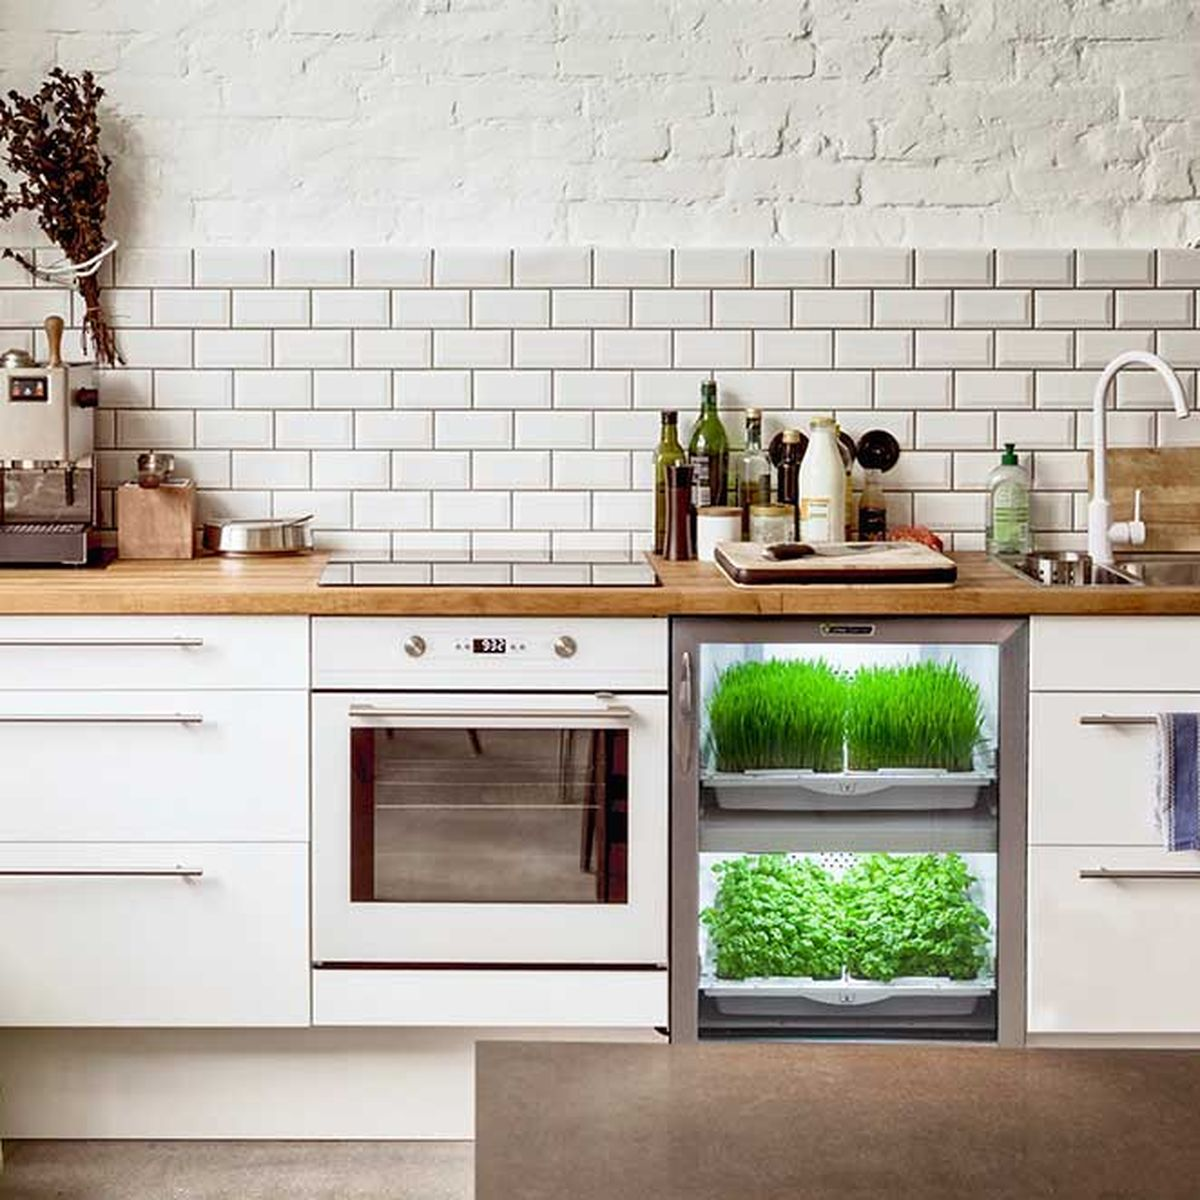 5 Indoor Gardening Technologies That Are Making it Easier to Grow ...